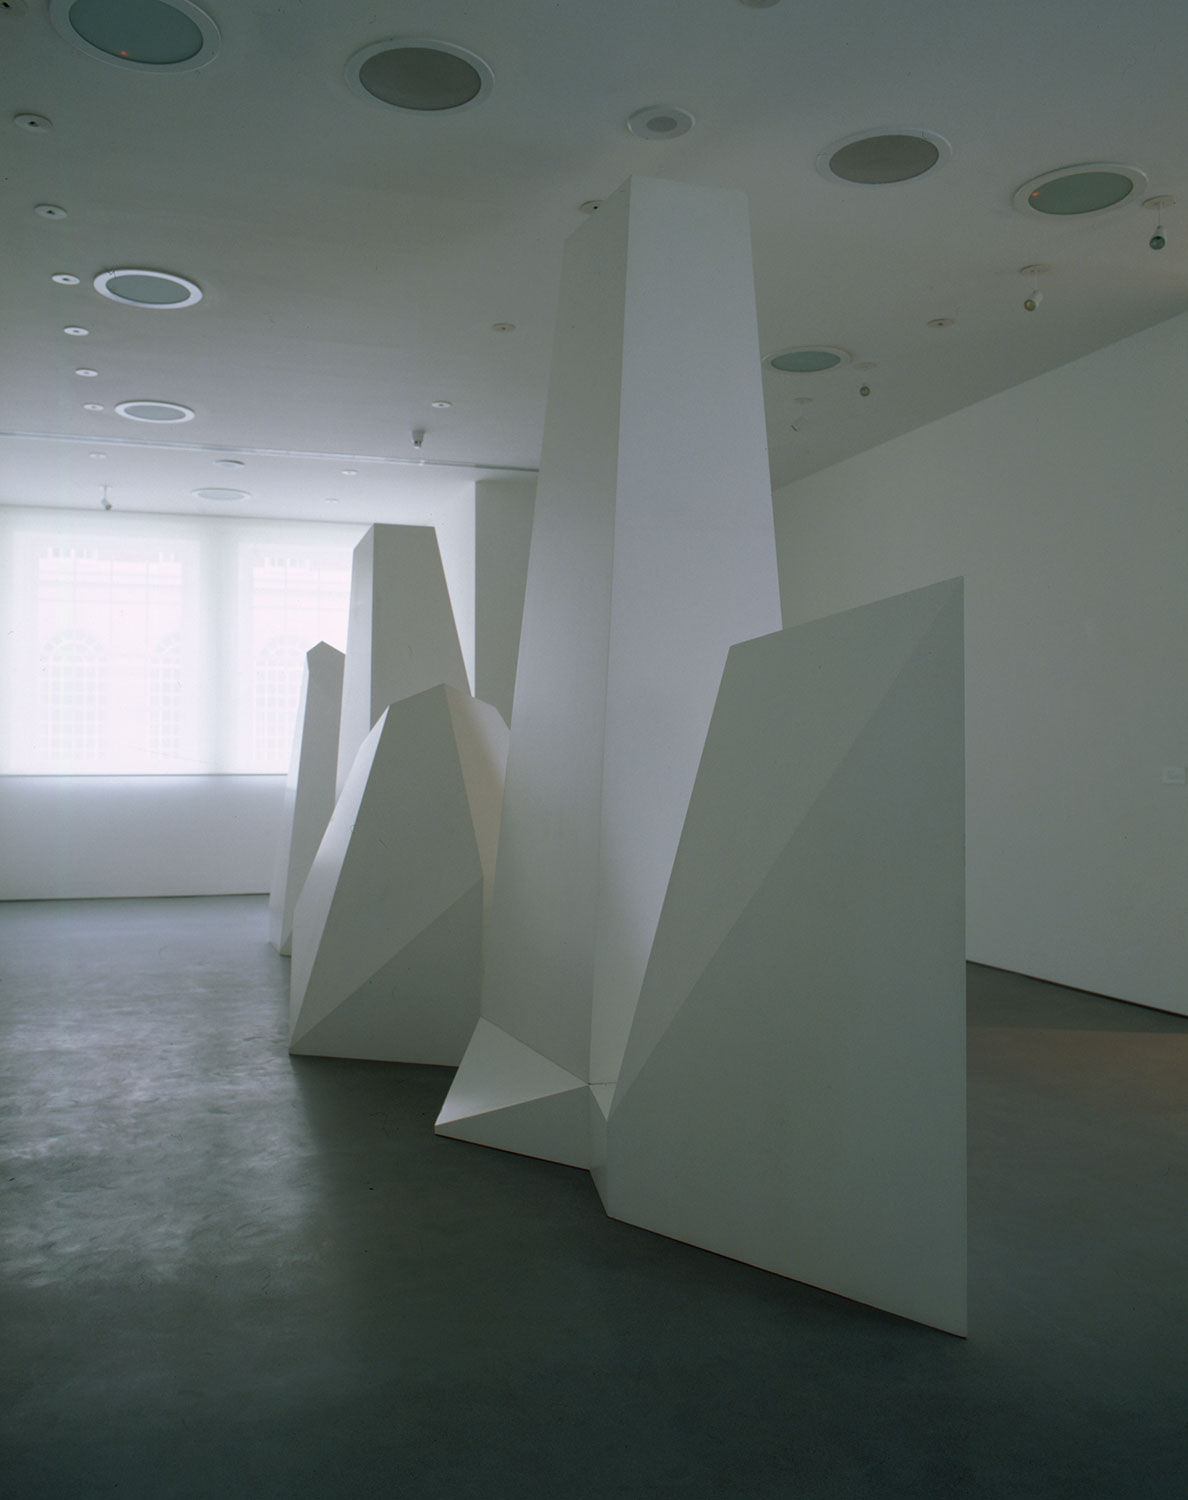 Installation view of Sol Lewitt 1